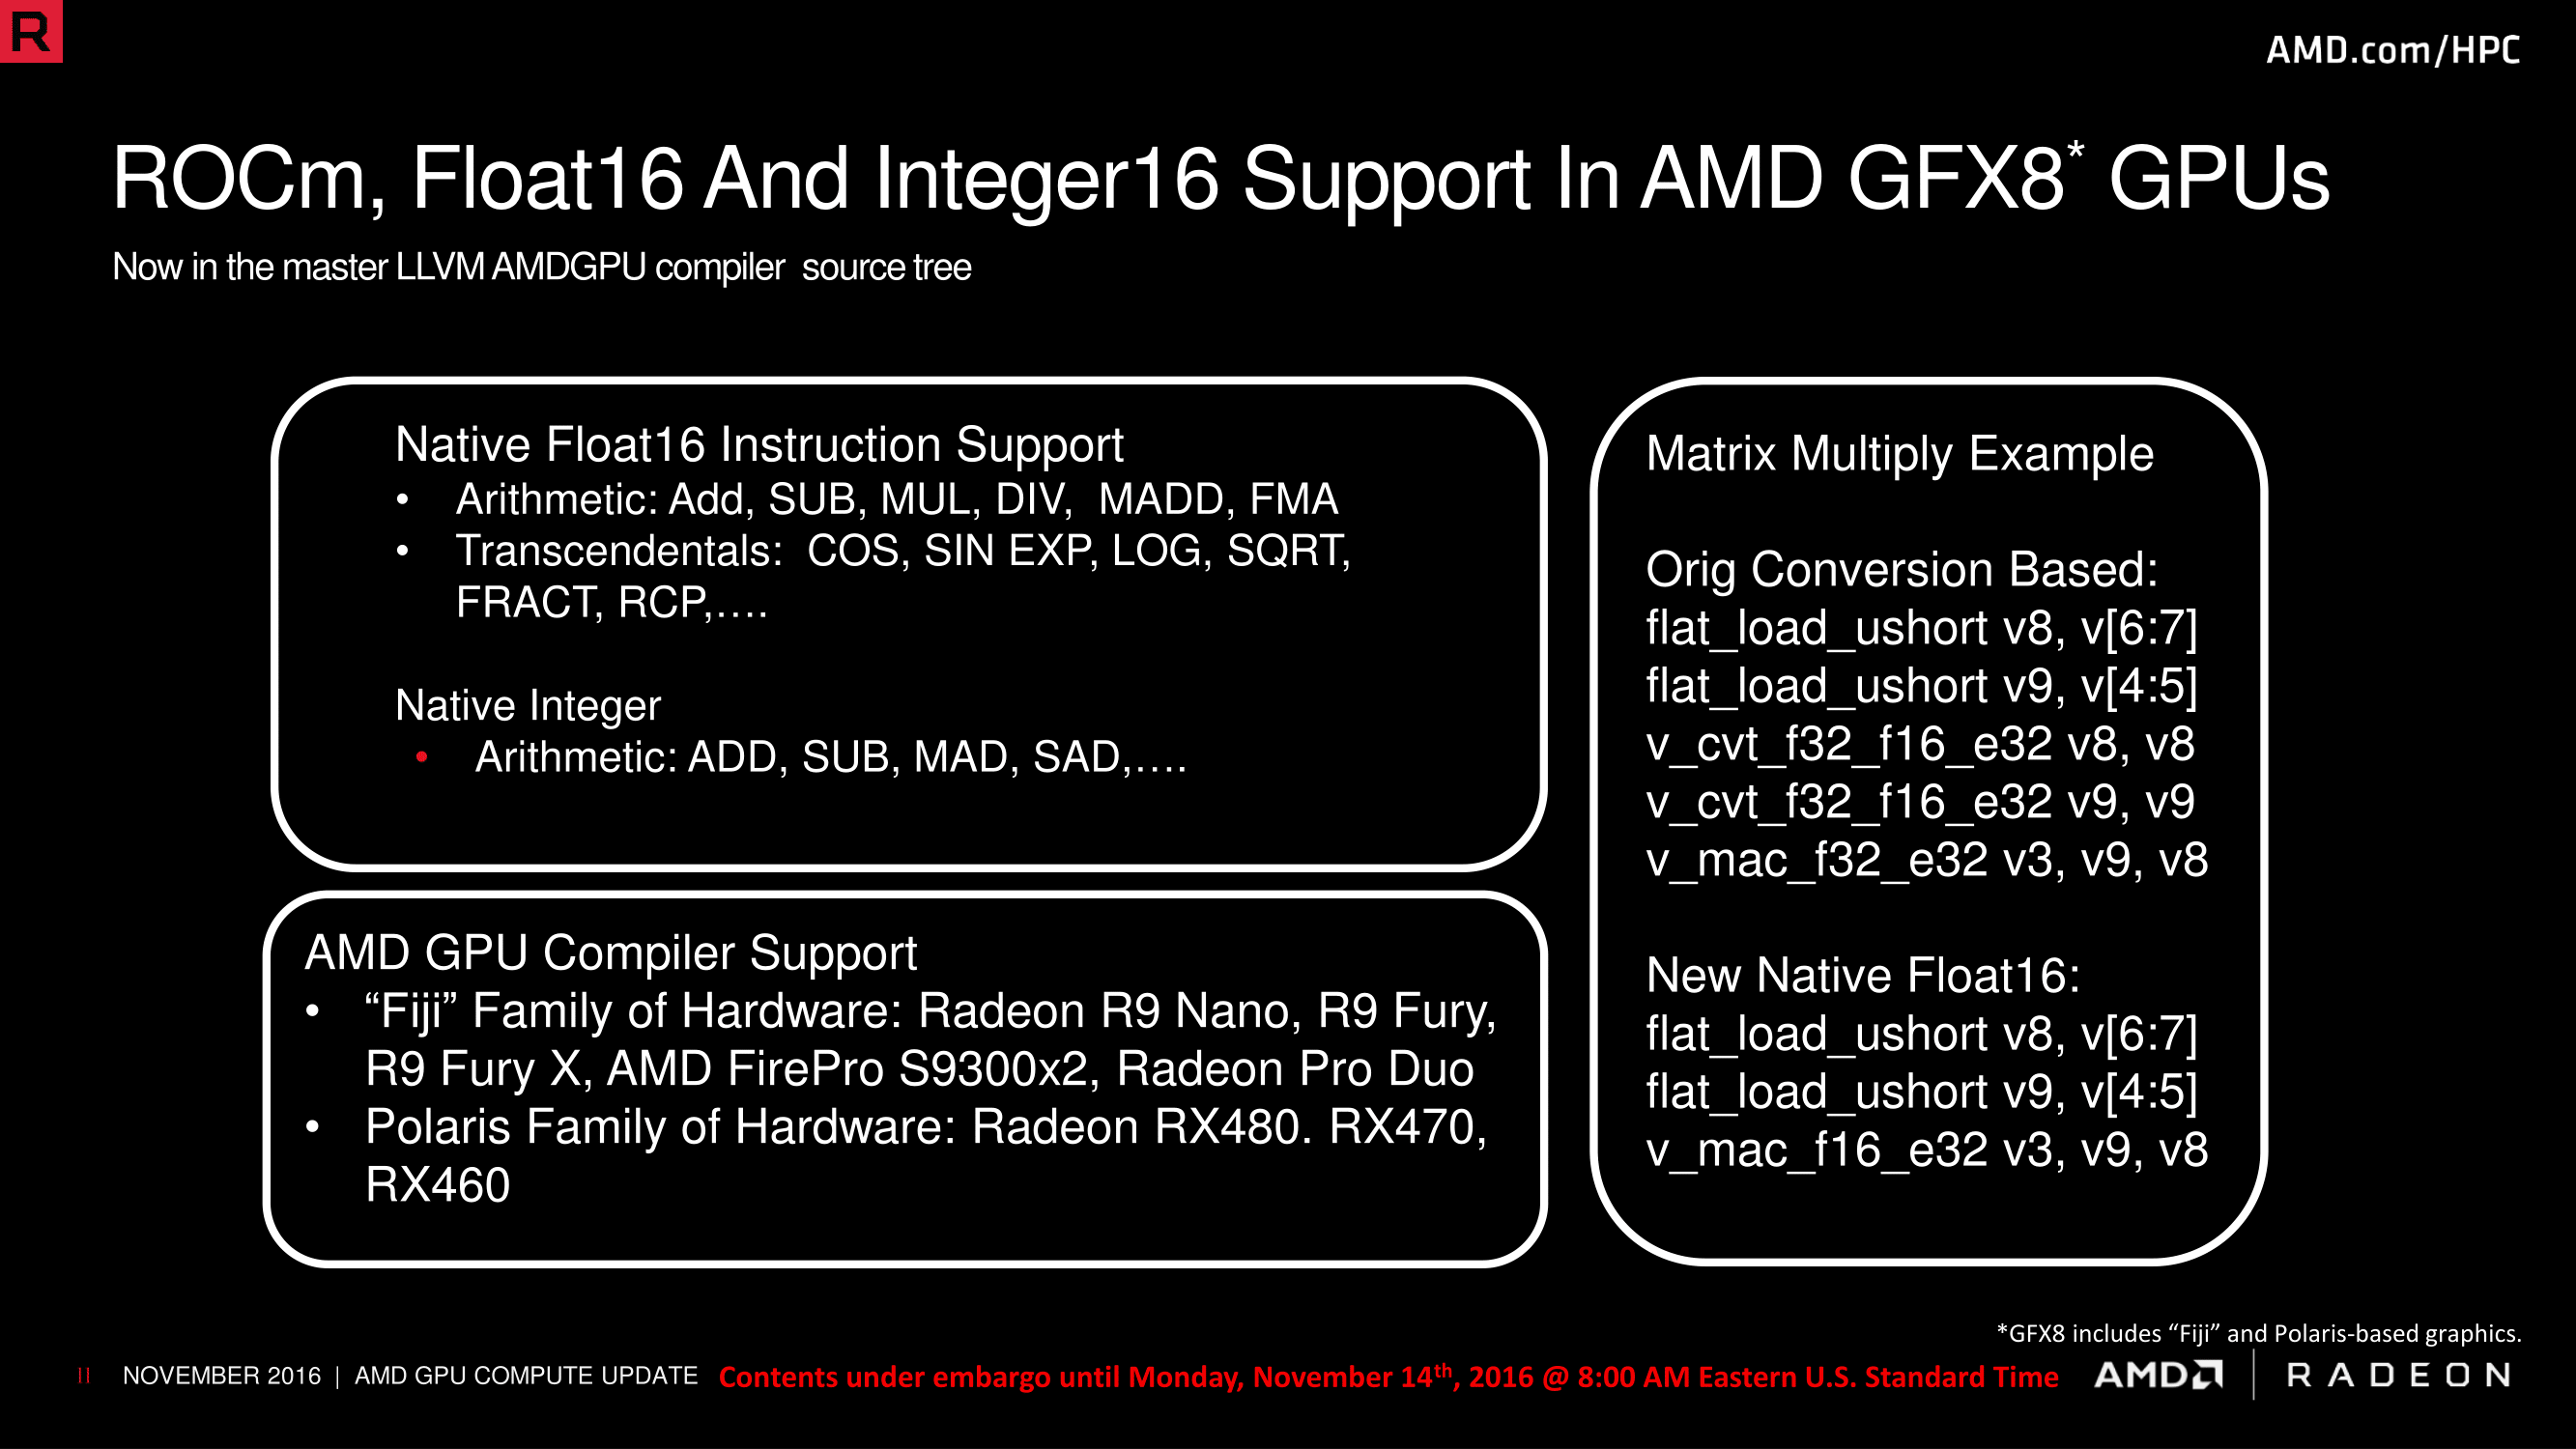 http://images.anandtech.com/doci/10831/AMD%20Update%20SC16%20Final%2011%2010%2016-11.png